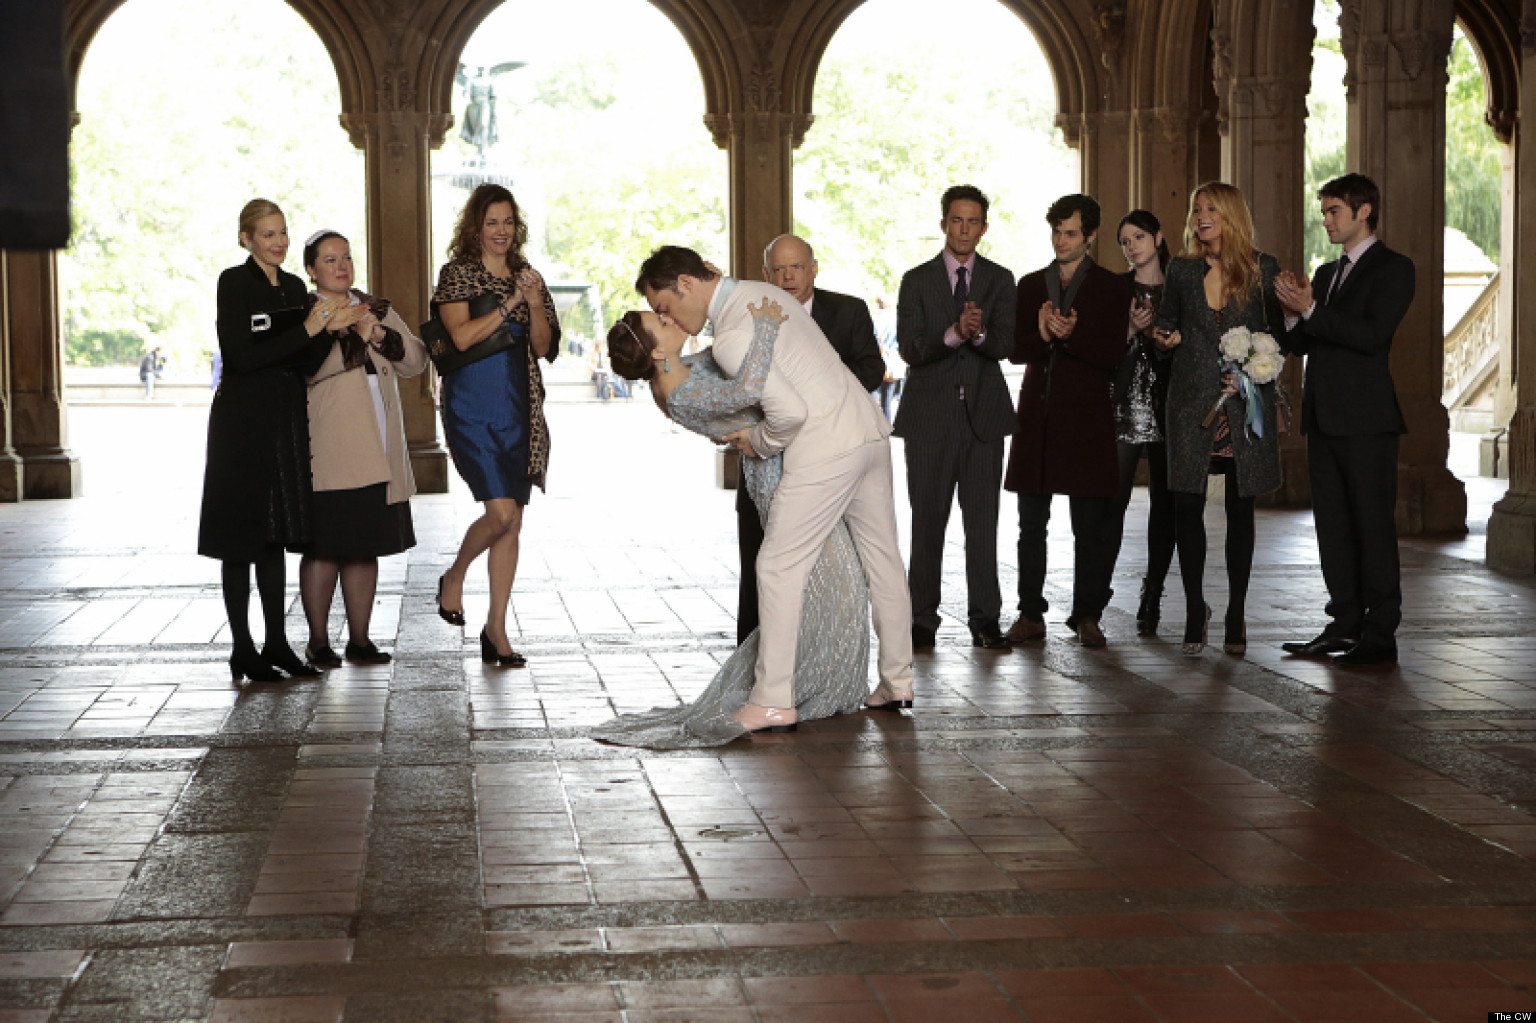 u0026 39 gossip girl u0026 39  series finale recap  two weddings  a funeral